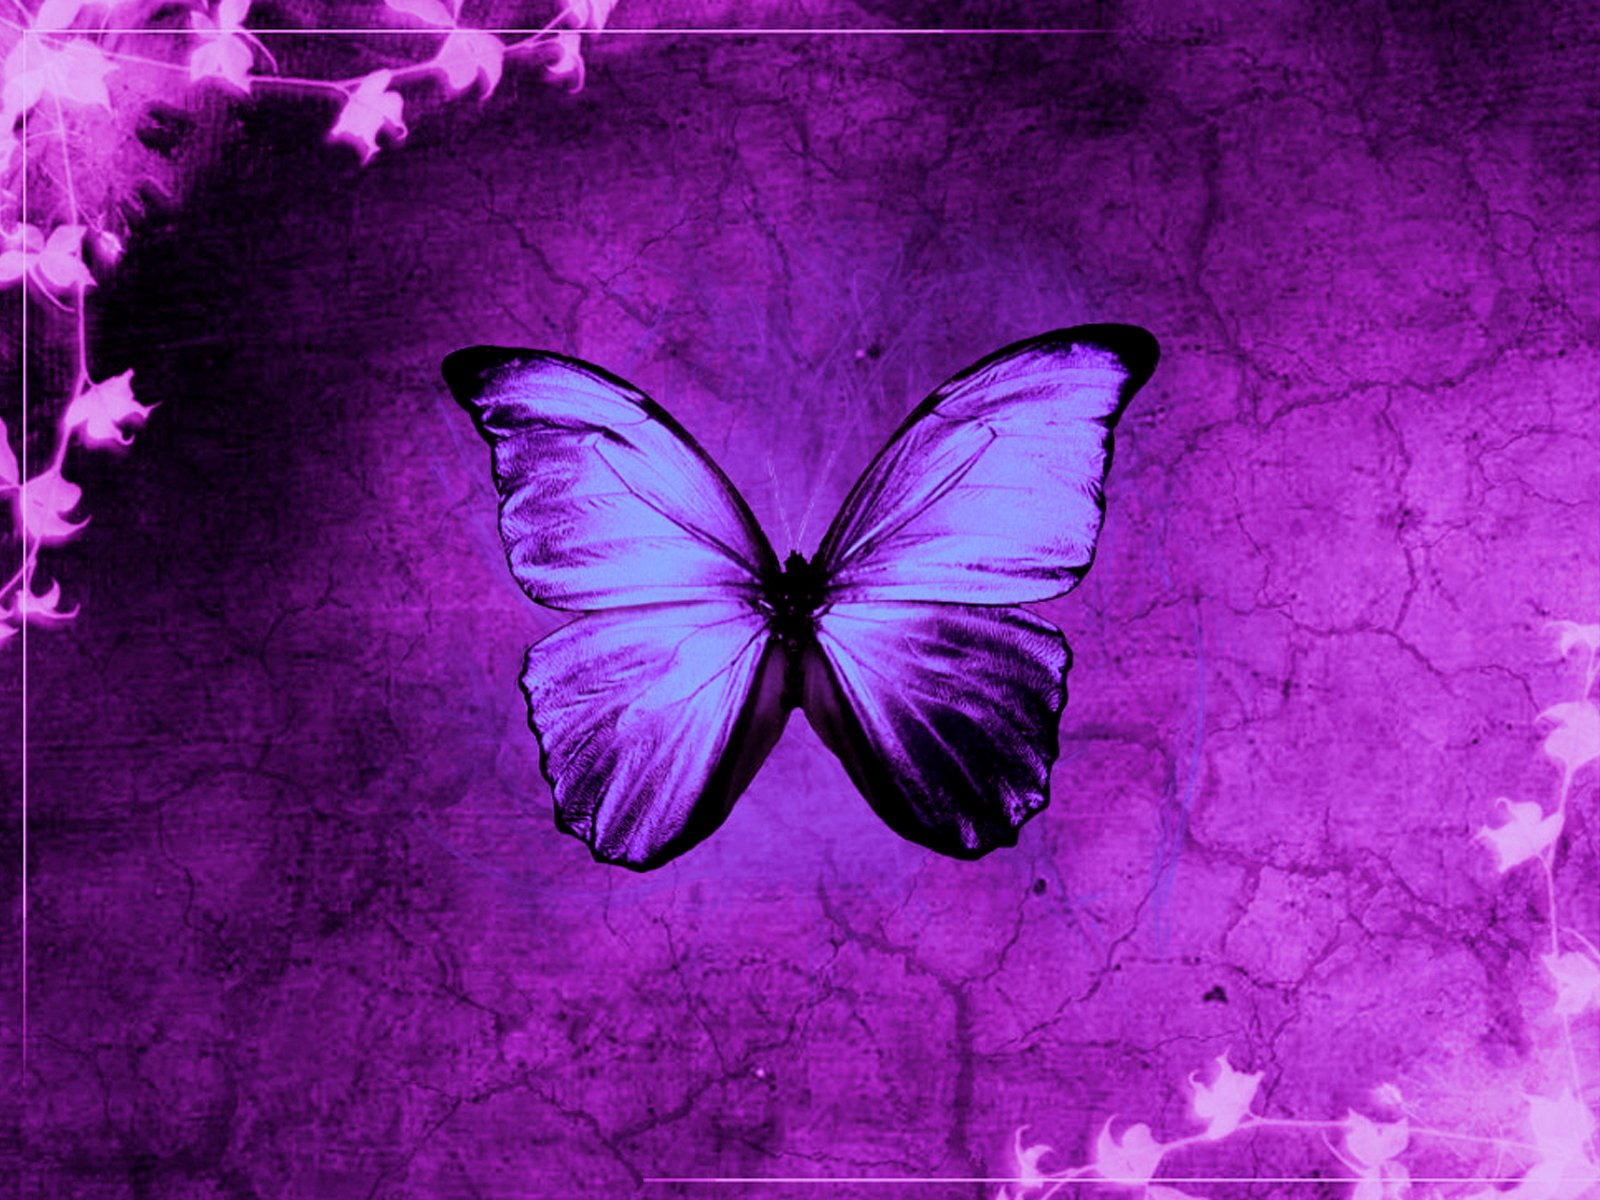 Butterfly Grass Template   PPT Backgrounds and Templates 1600x1200